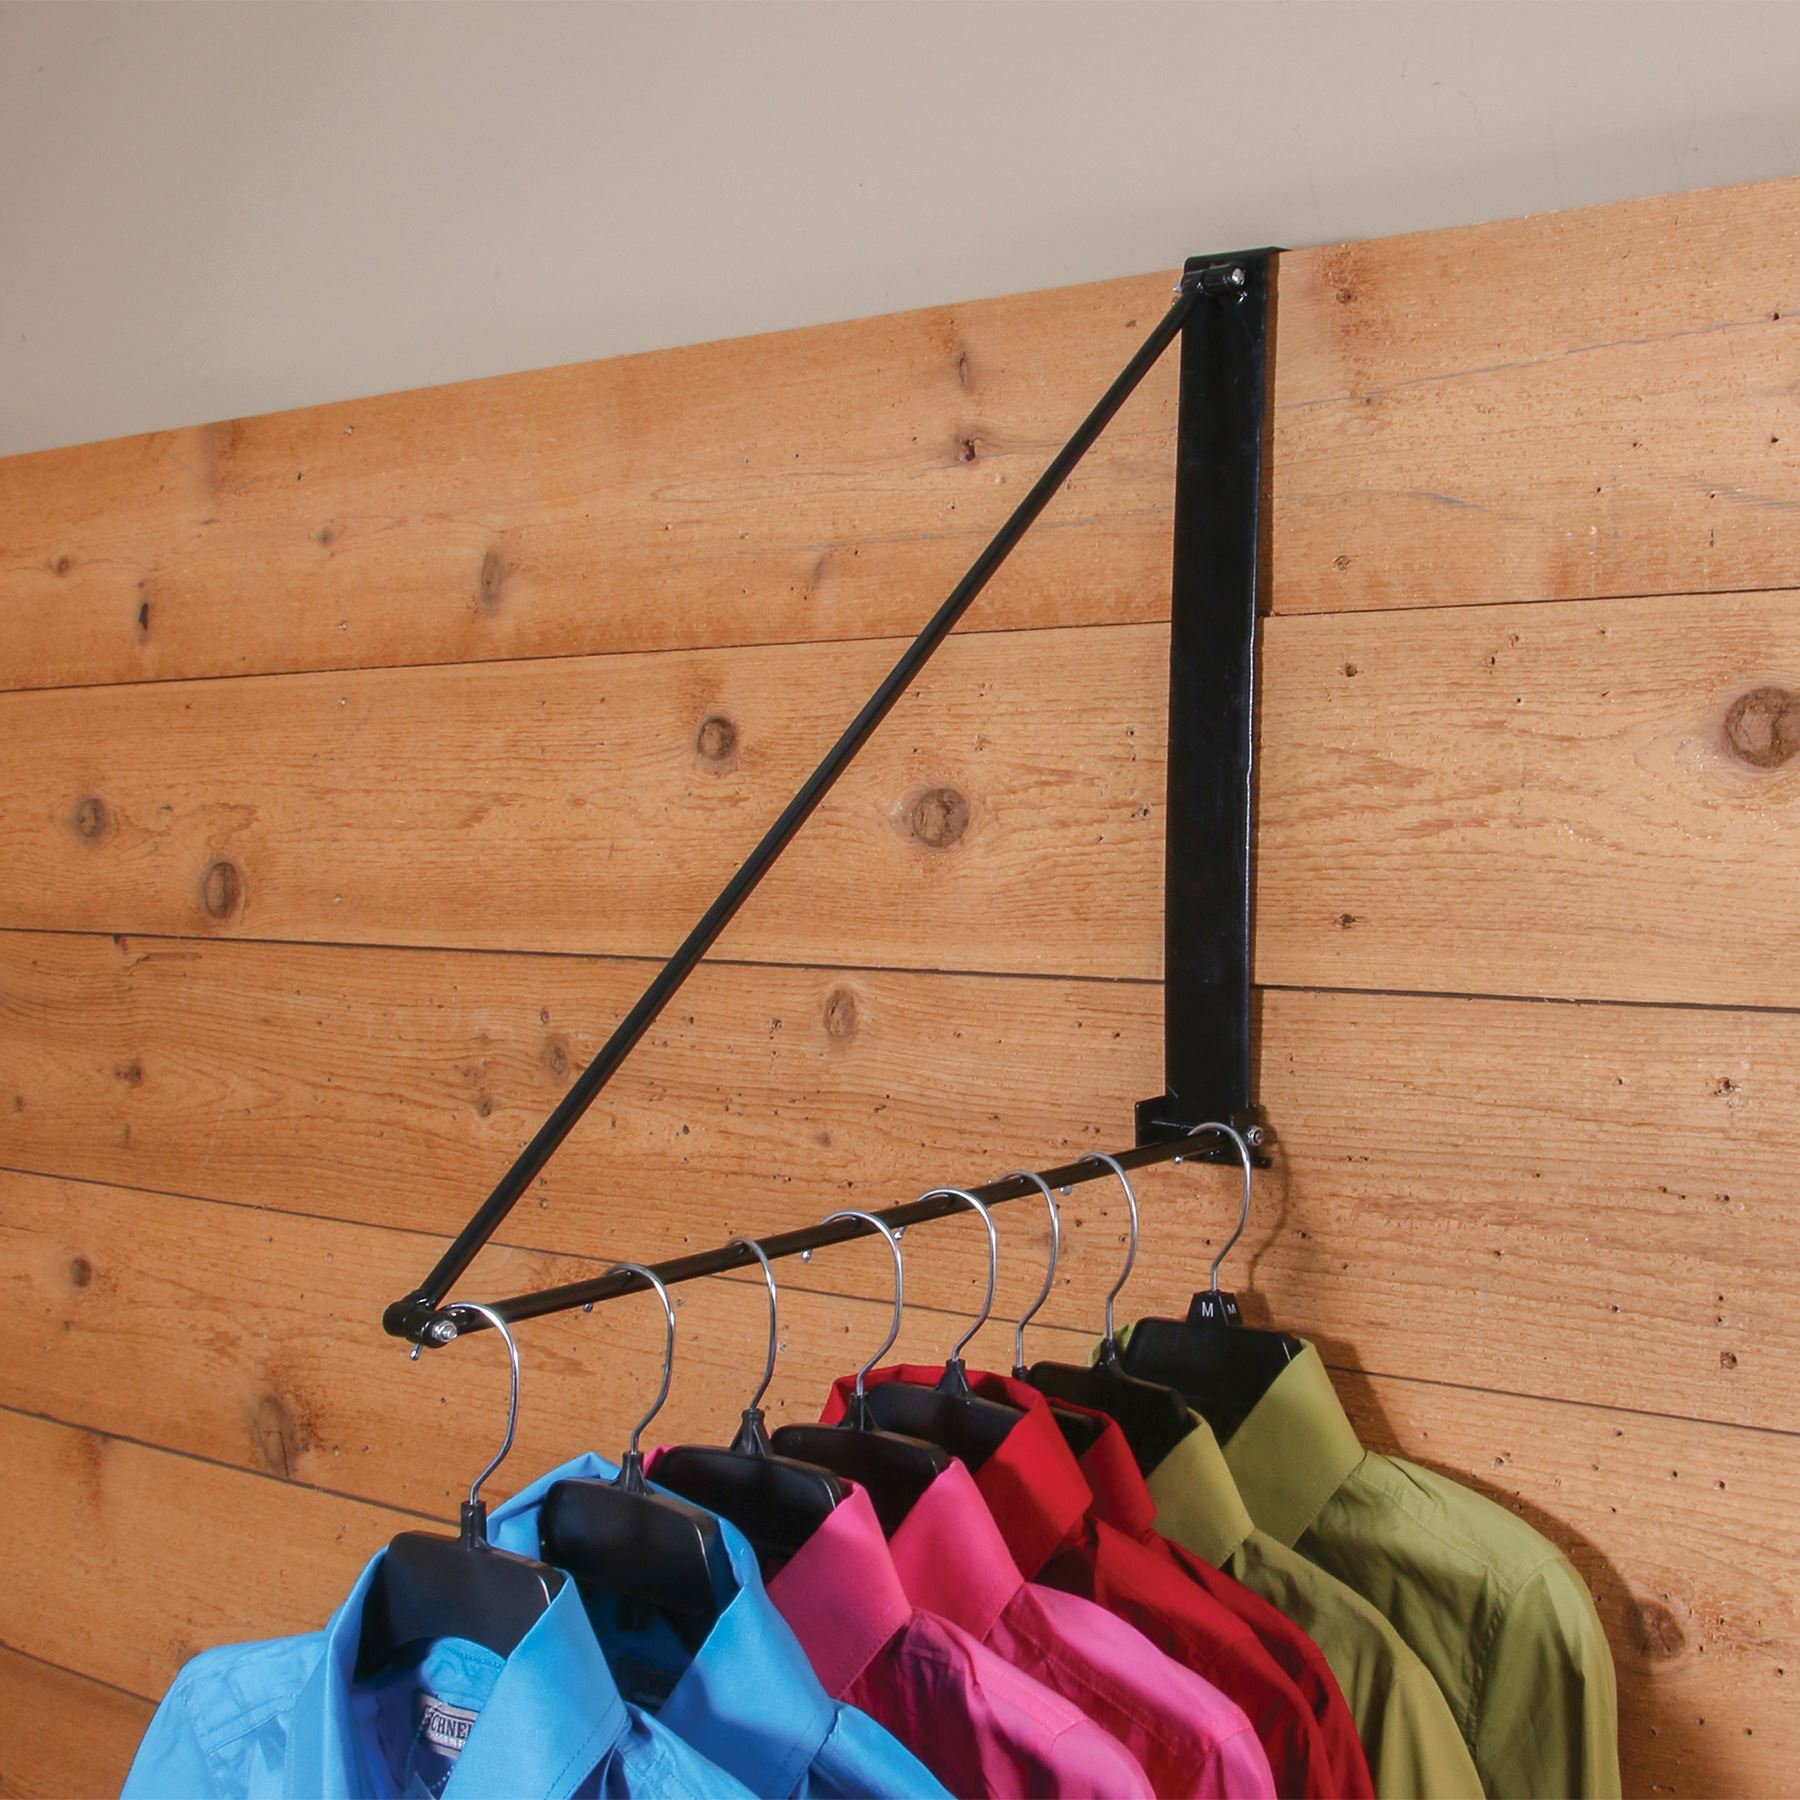 Easy-Up® Collapsible Clothing Hanger